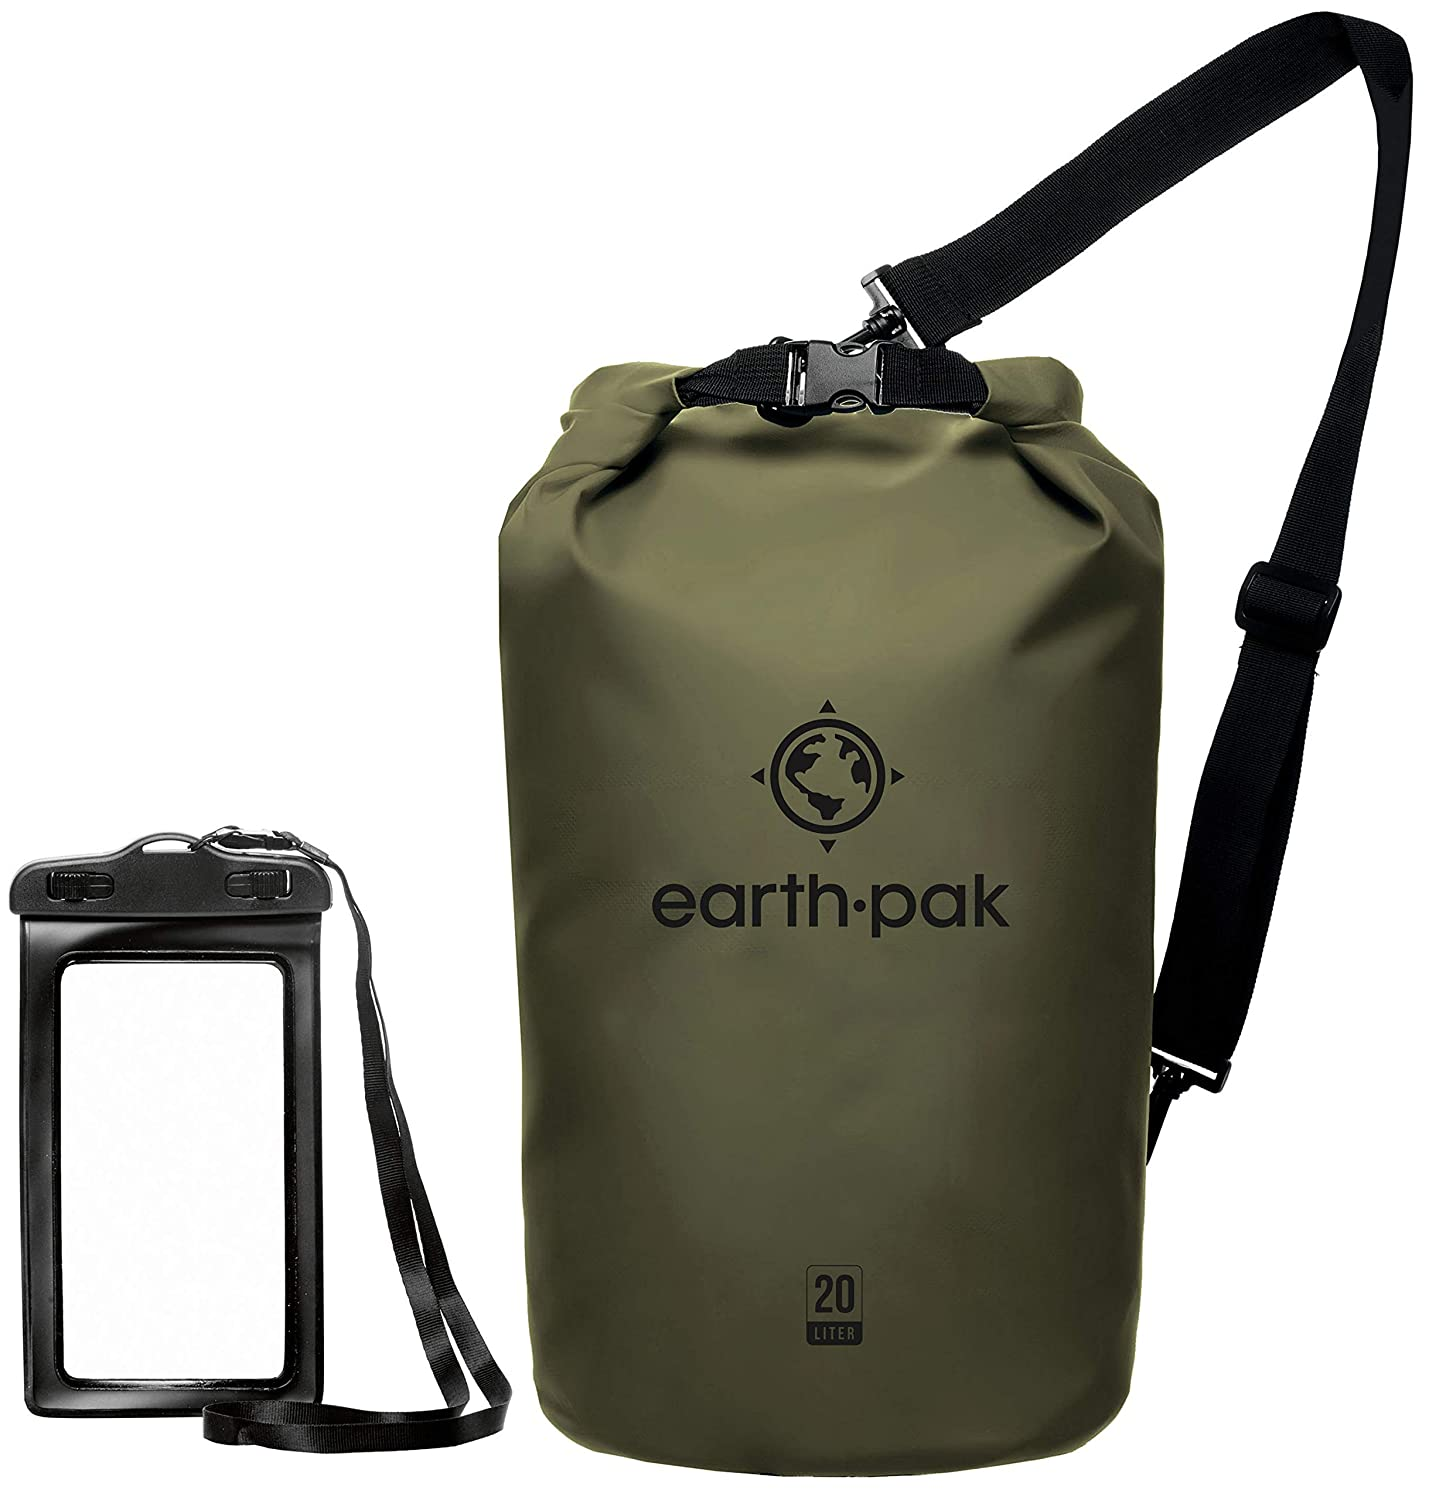 Forest Green 20L Earth Pak Waterproof Dry Bag  Roll Top Dry Compression Sack Keeps Gear Dry for Kayaking, Beach, Rafting, Boating, Hiking, Camping and Fishing with Waterproof Phone Case